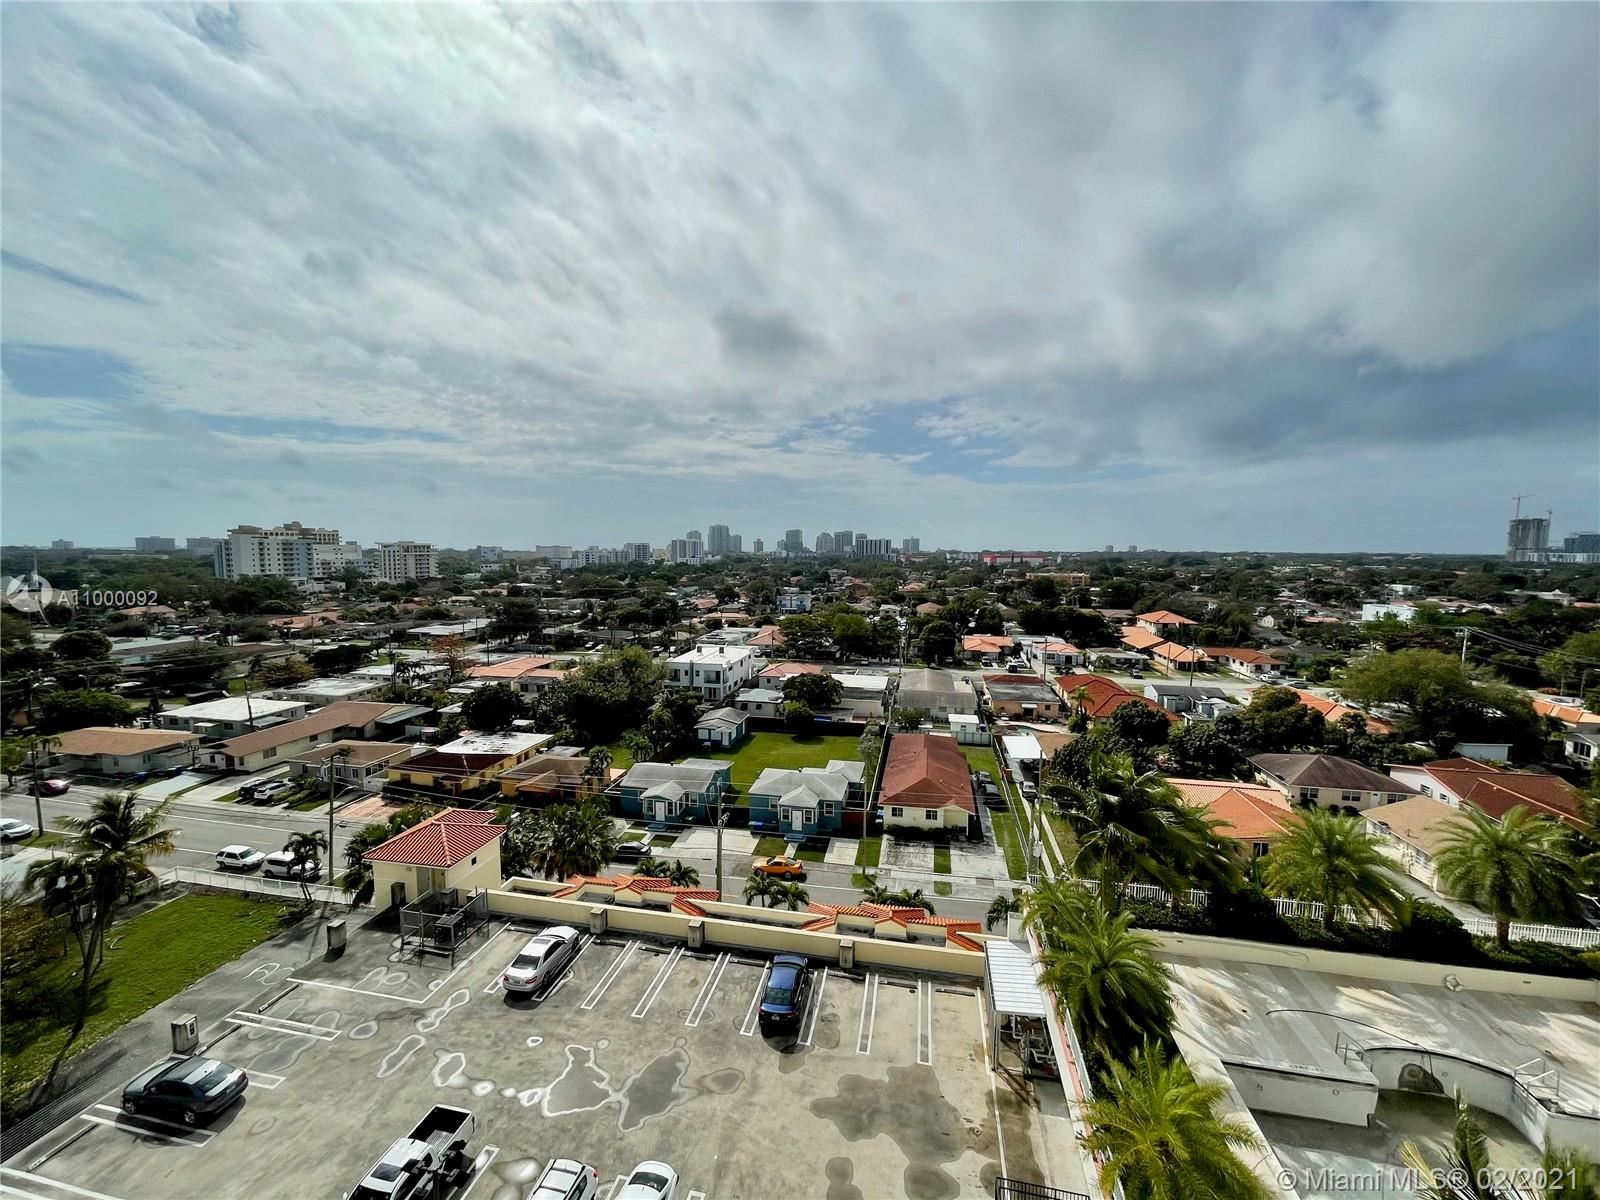 3000 Coral Way #1012, Miami, FL 33145 - #: A11000092